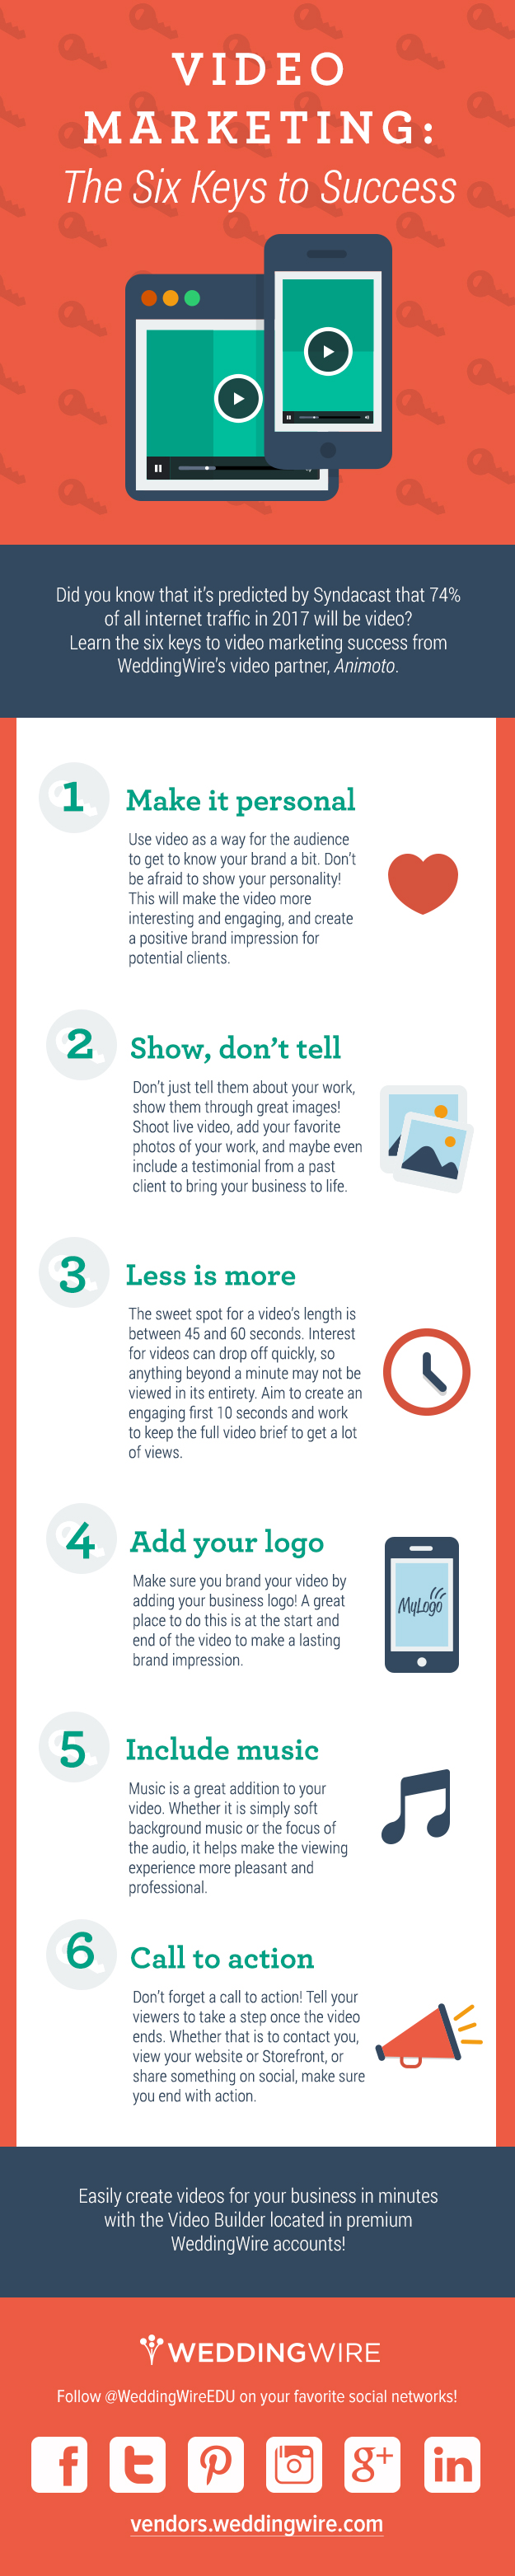 Six keys to successful video marketing